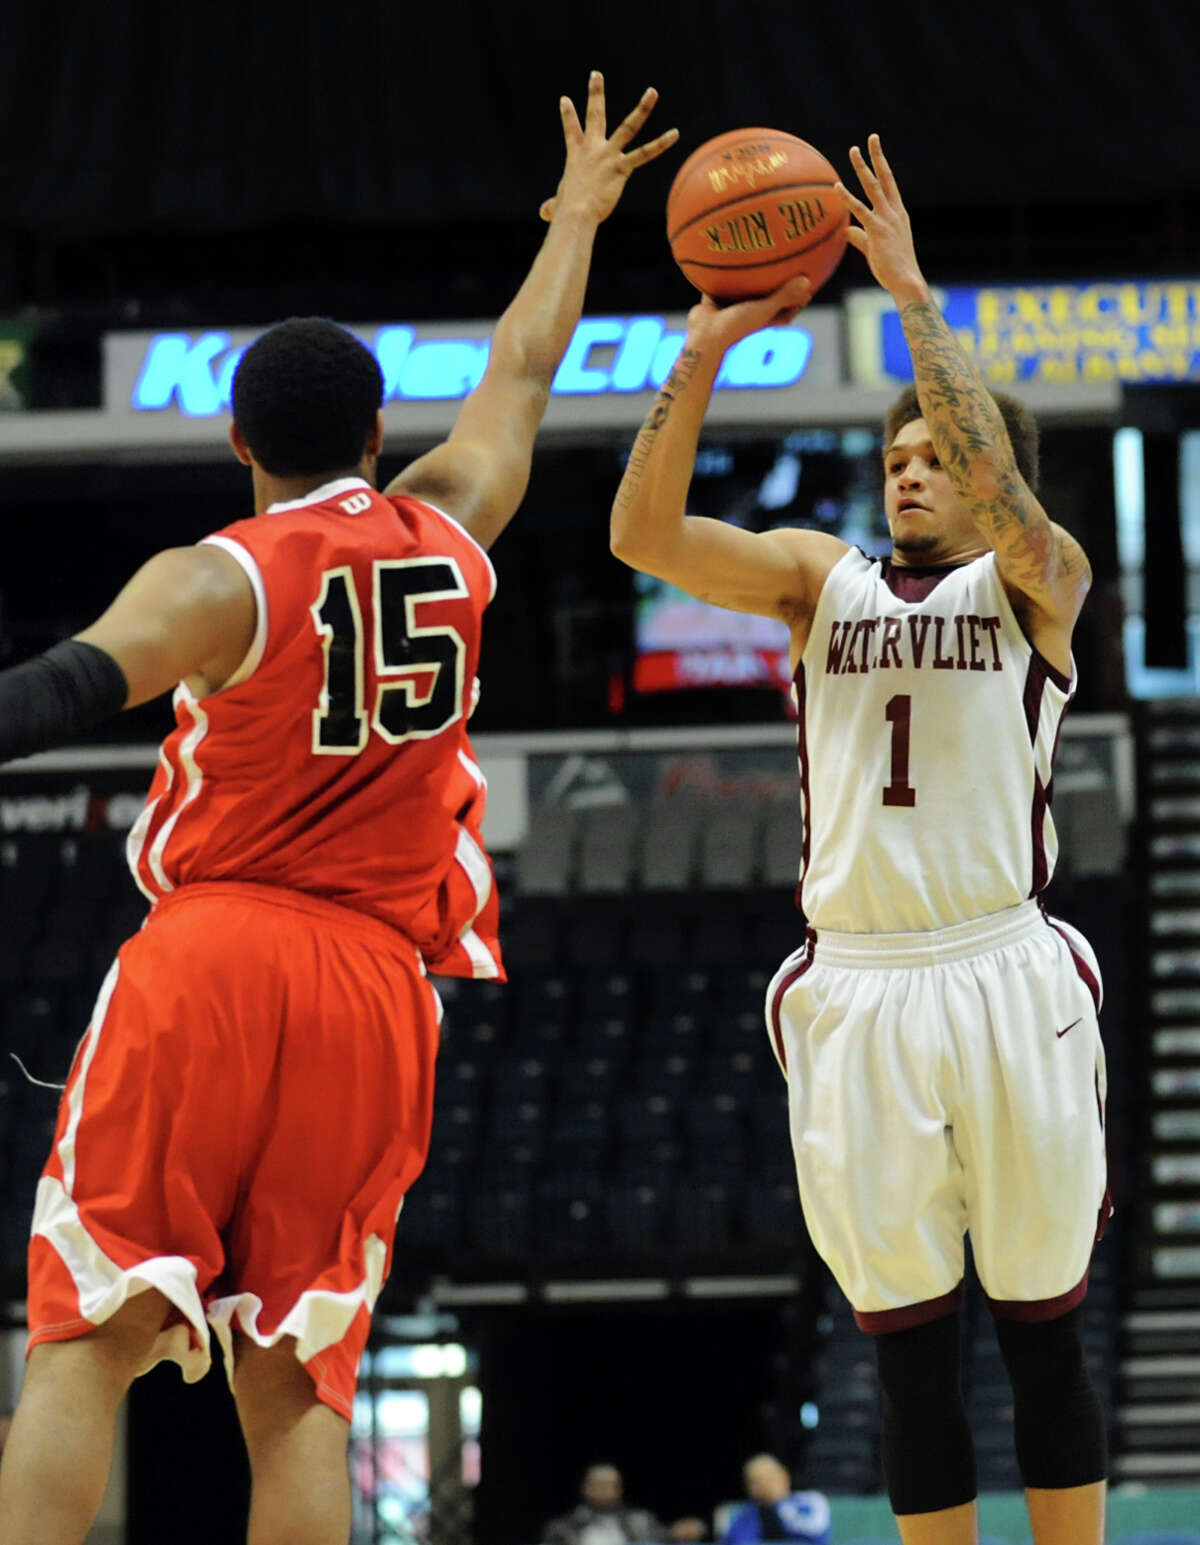 Watervliet's Jordan Gleason, left, shoots for three points as Fannie Lou Hamer's Michael Castello defends during their Class B State Federation basketball game on Saturday, March 23, 2013, at Times Union Center in Albany, N.Y. (Cindy Schultz / Times Union)